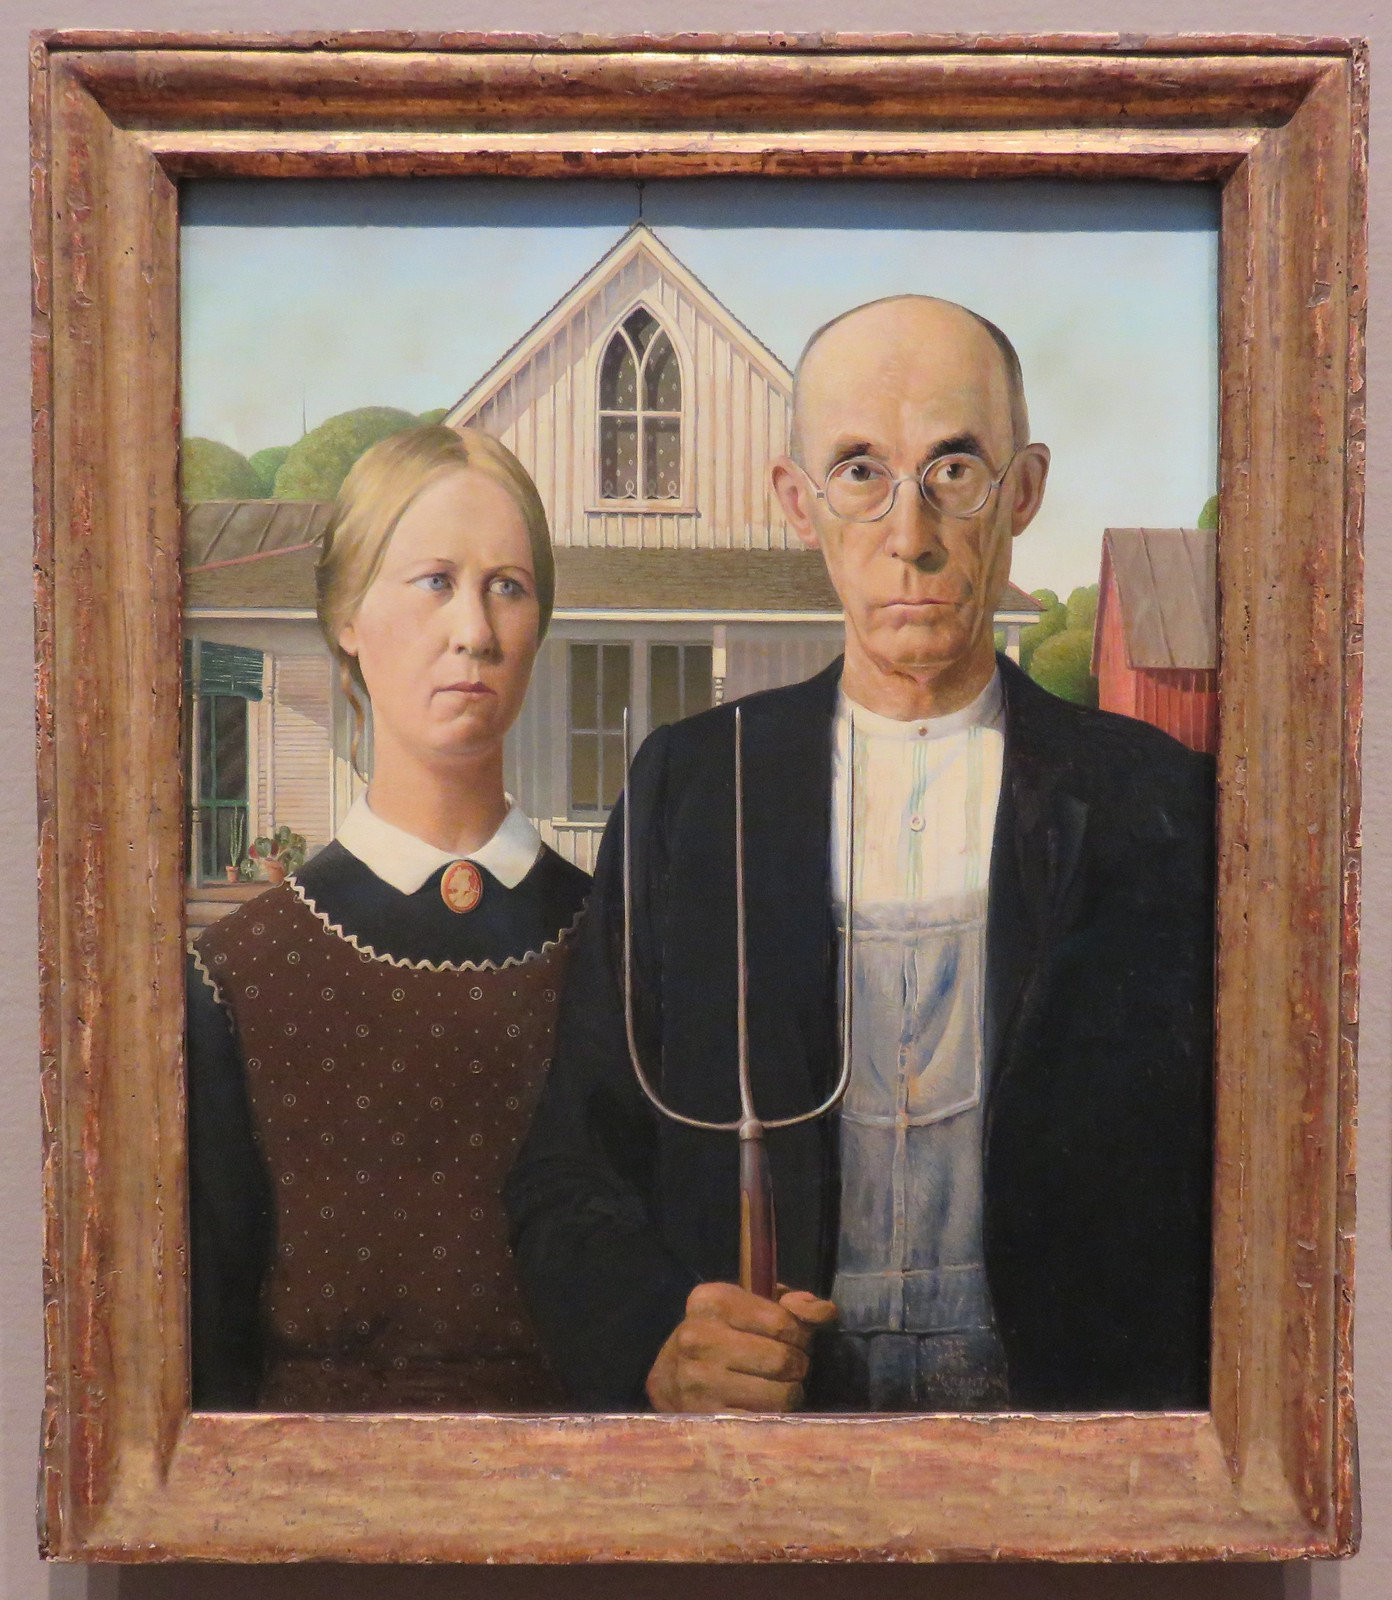 How A Very Paintable House Inspired American Gothic By